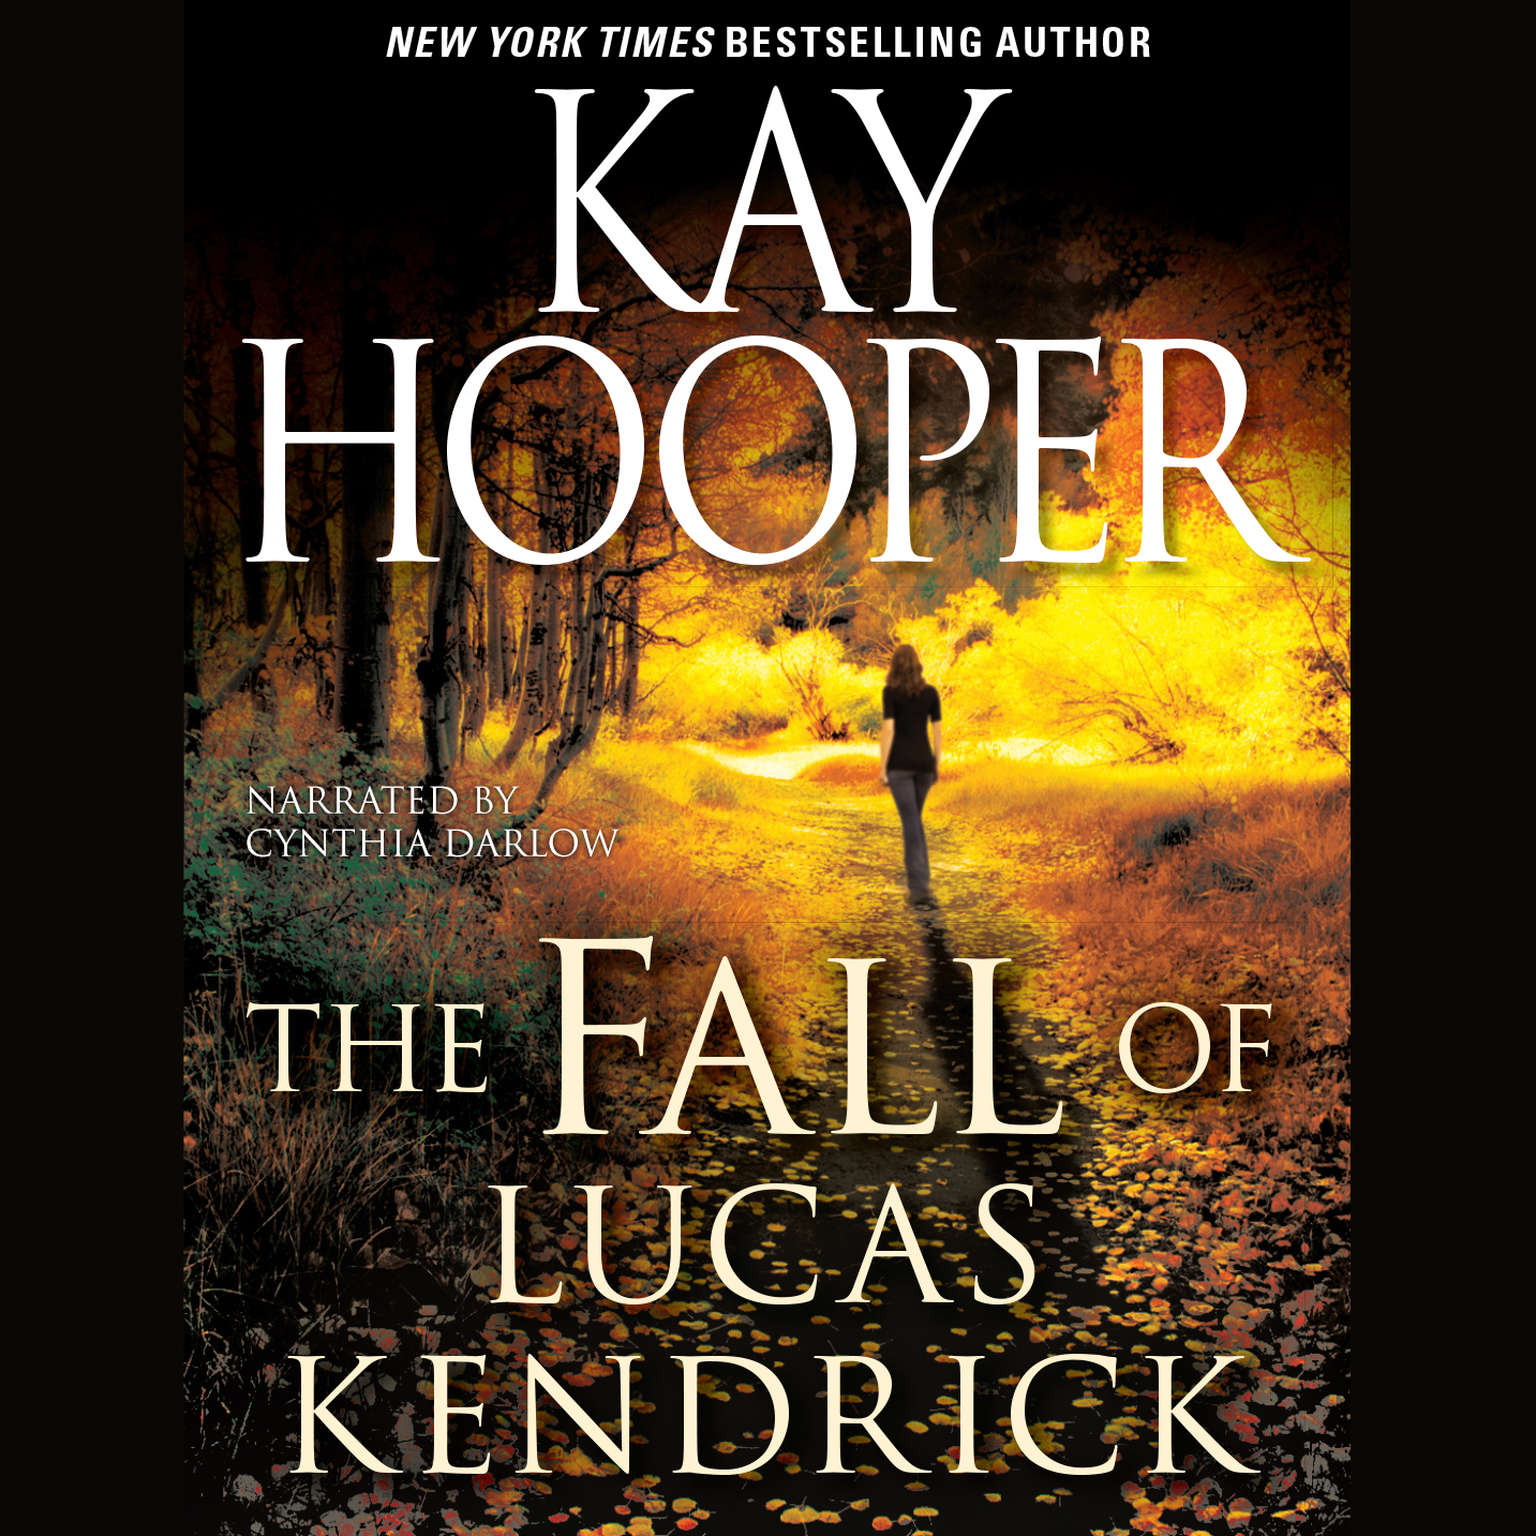 Printable The Fall of Lucas Kendrick Audiobook Cover Art